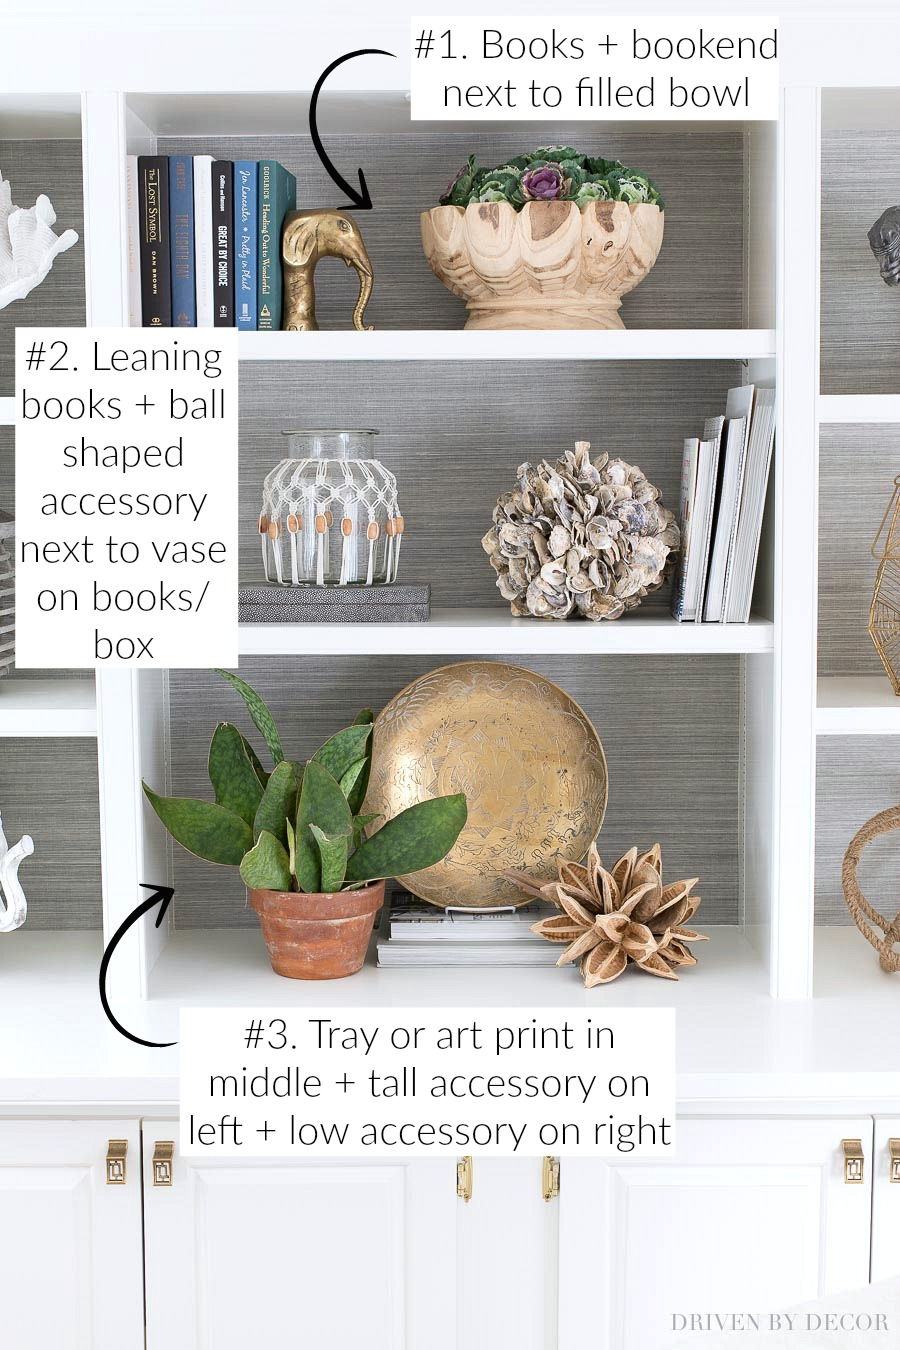 Simple formulas for decorating your shelves - SO helpful!!